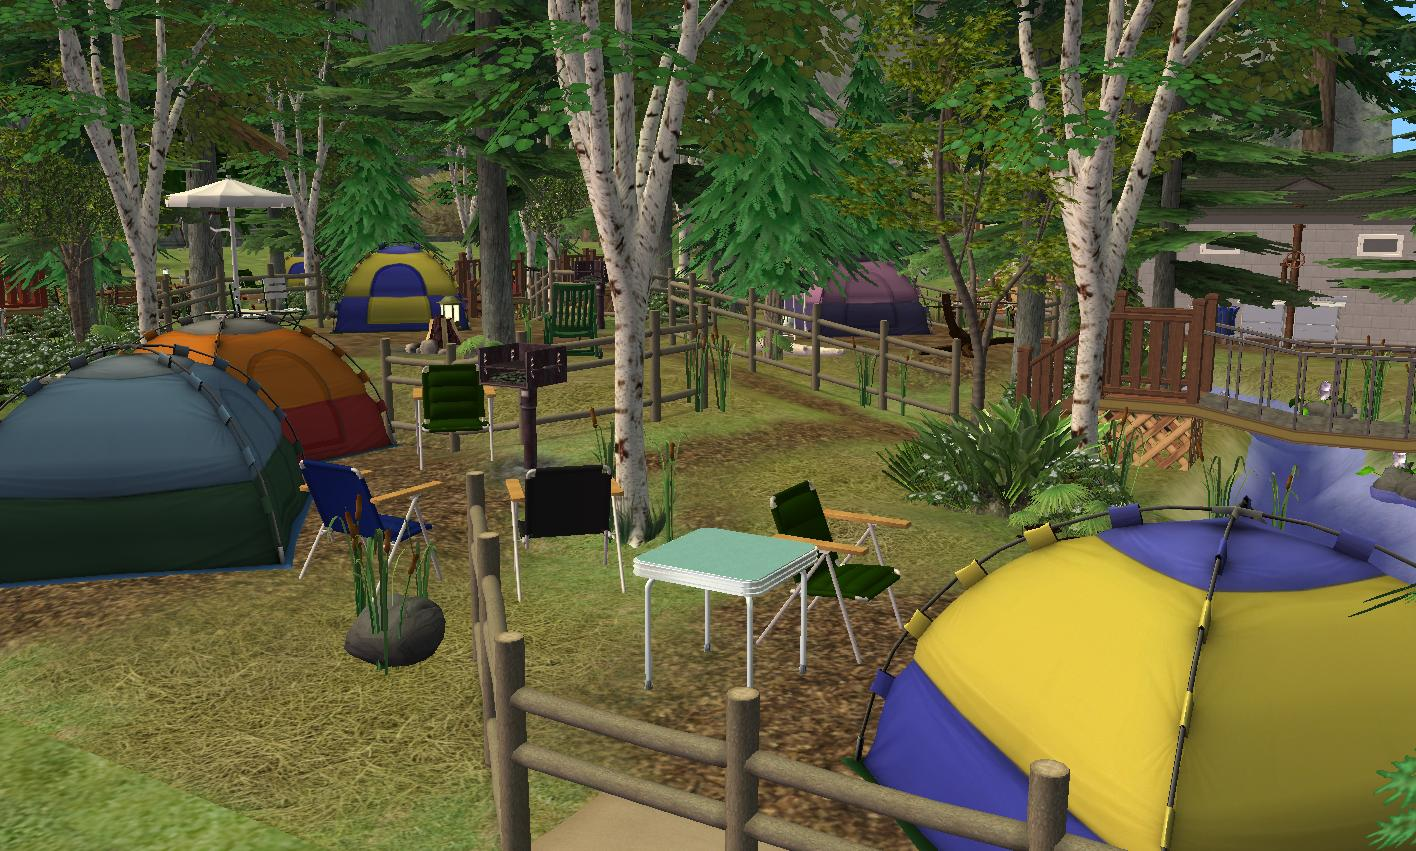 4 Camping Mod The Sims Elk Ridge Campground No Cc